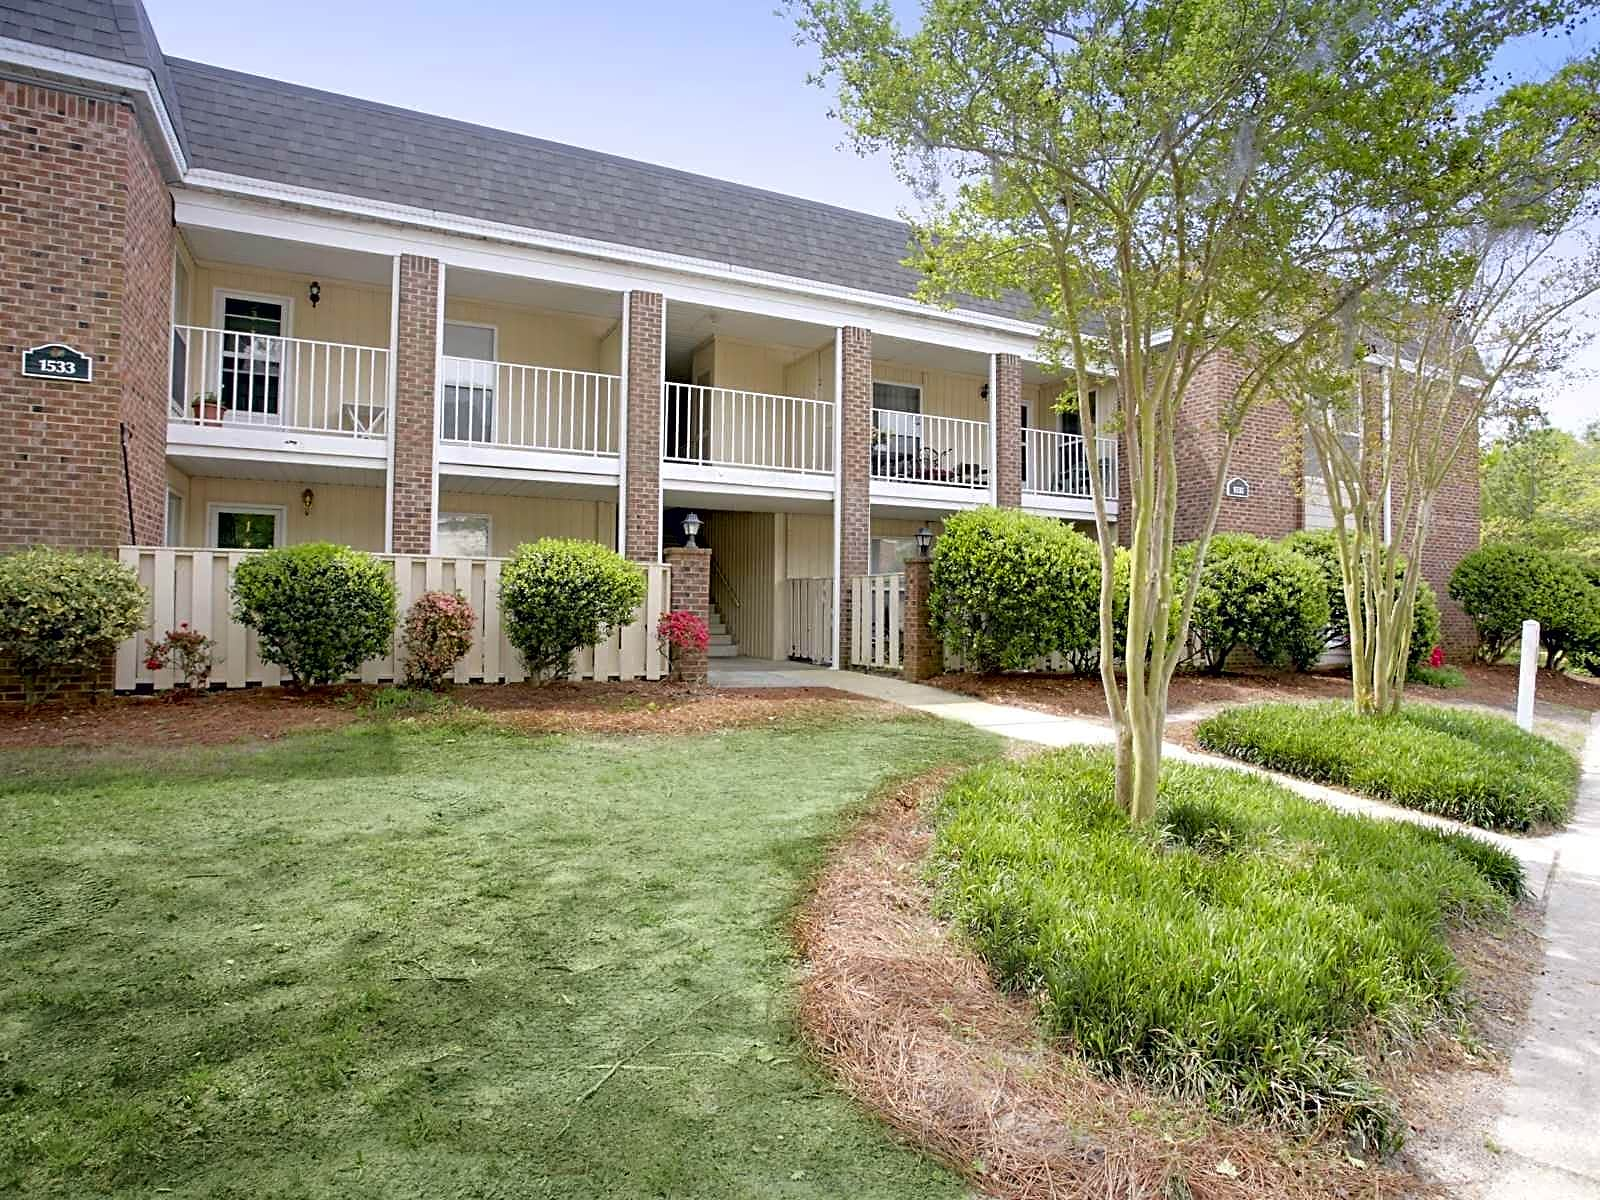 Glenmeade Village Apartments